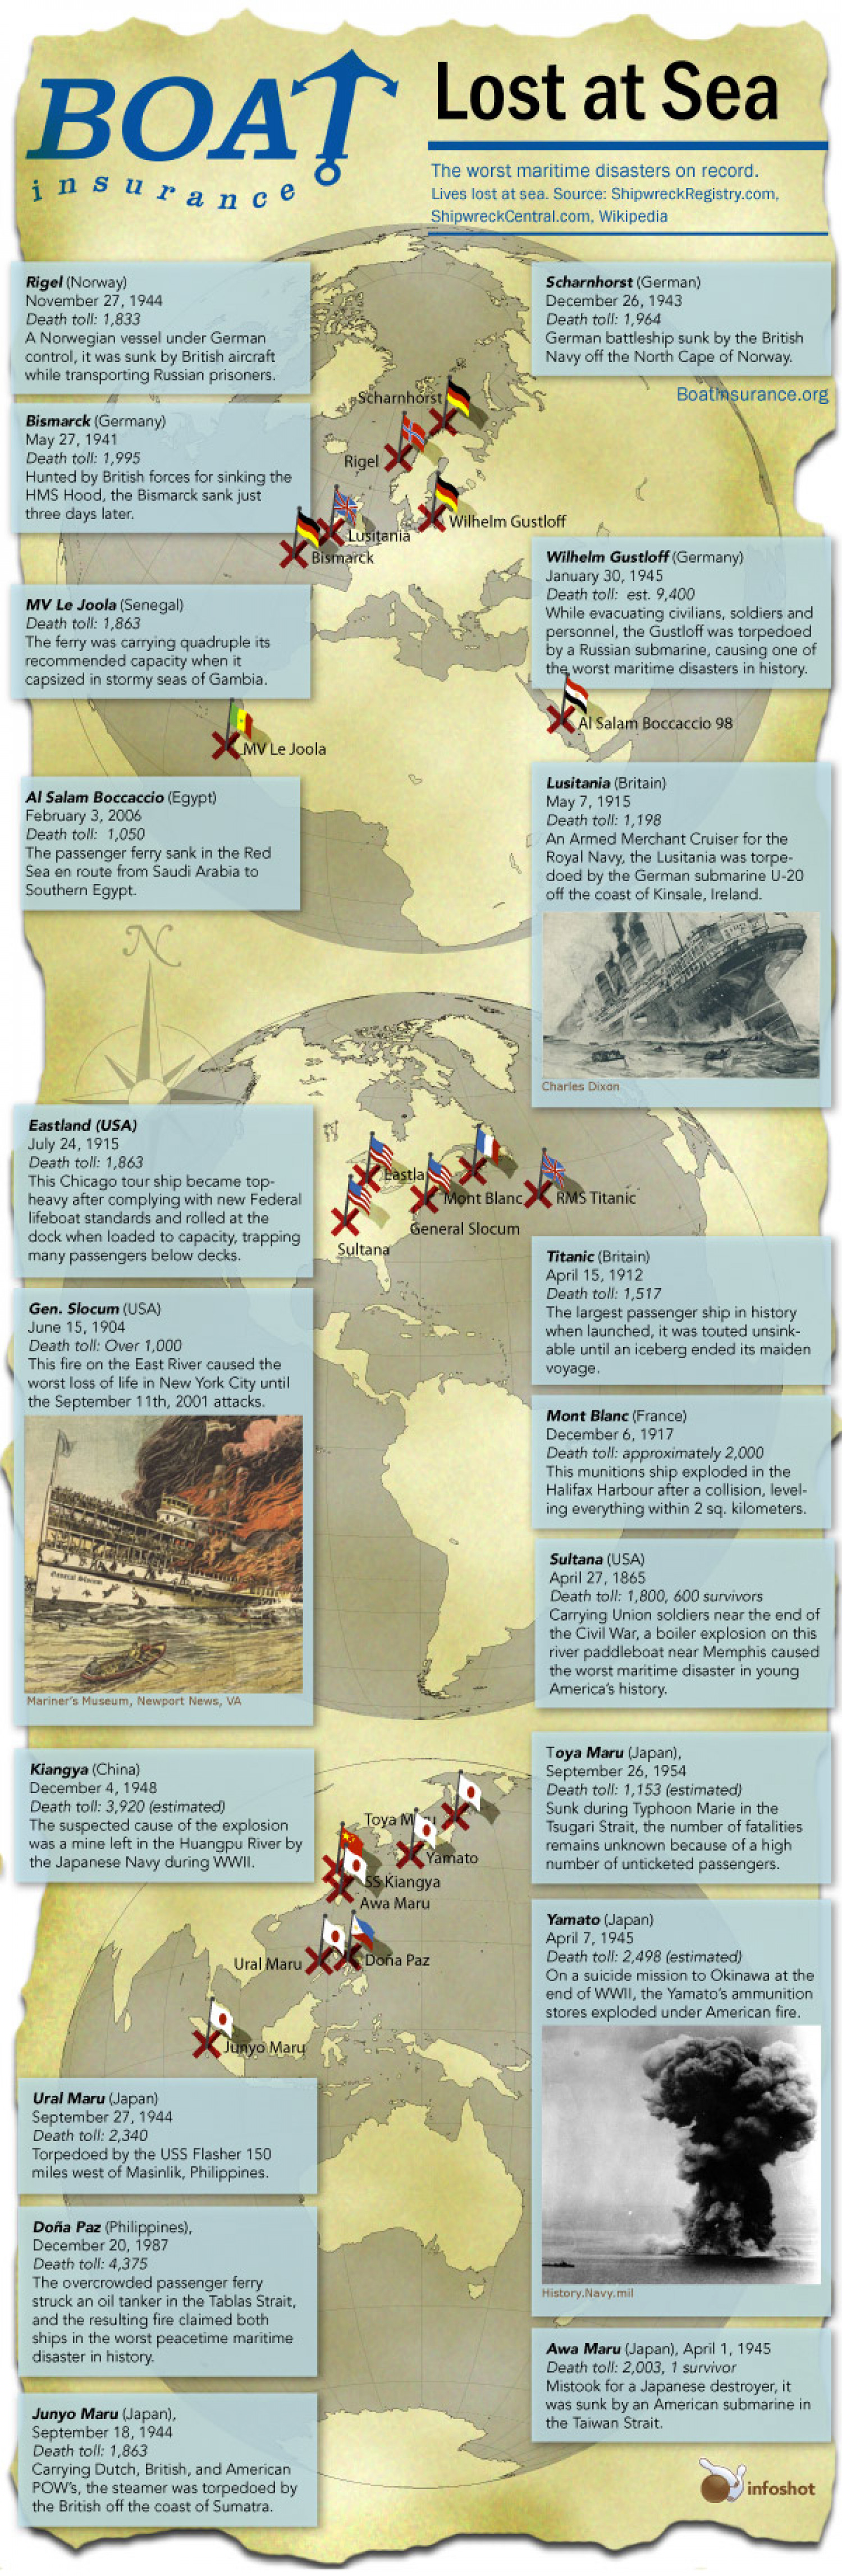 Lost at Sea Infographic